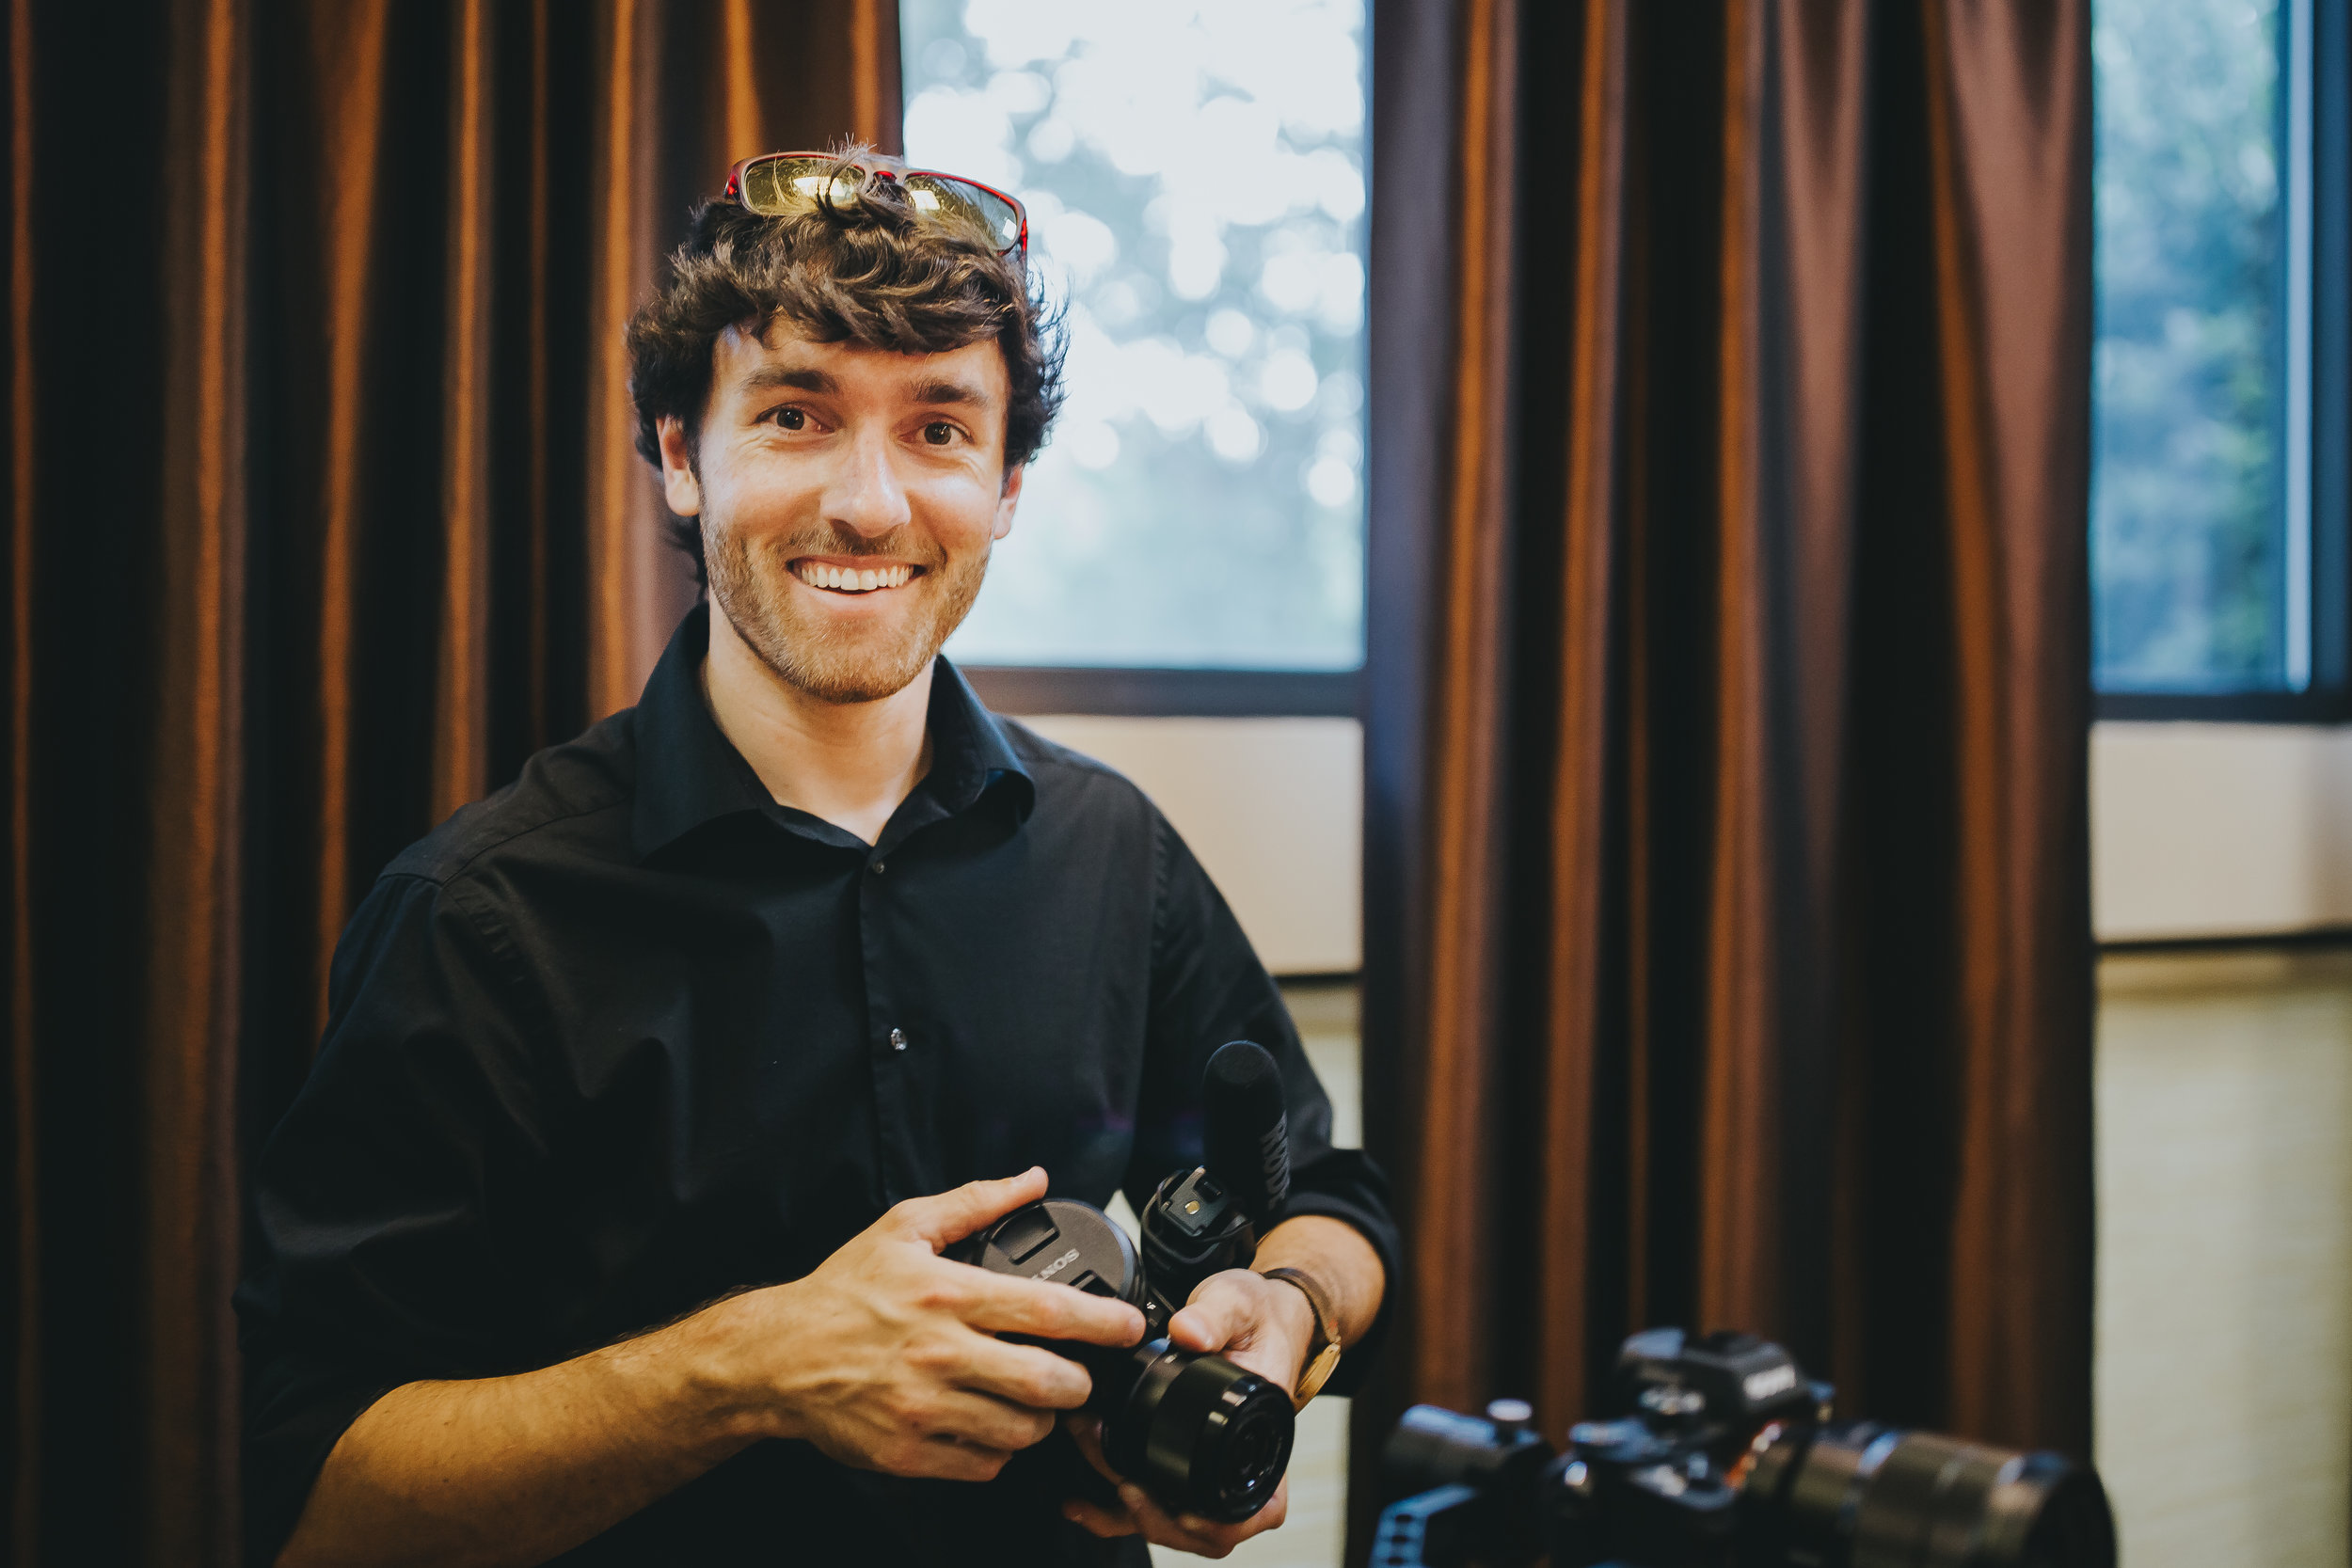 Videography - Taylor Thompson at Tailored Film** The sneak peek video was created by Blooming Dreams Photo.